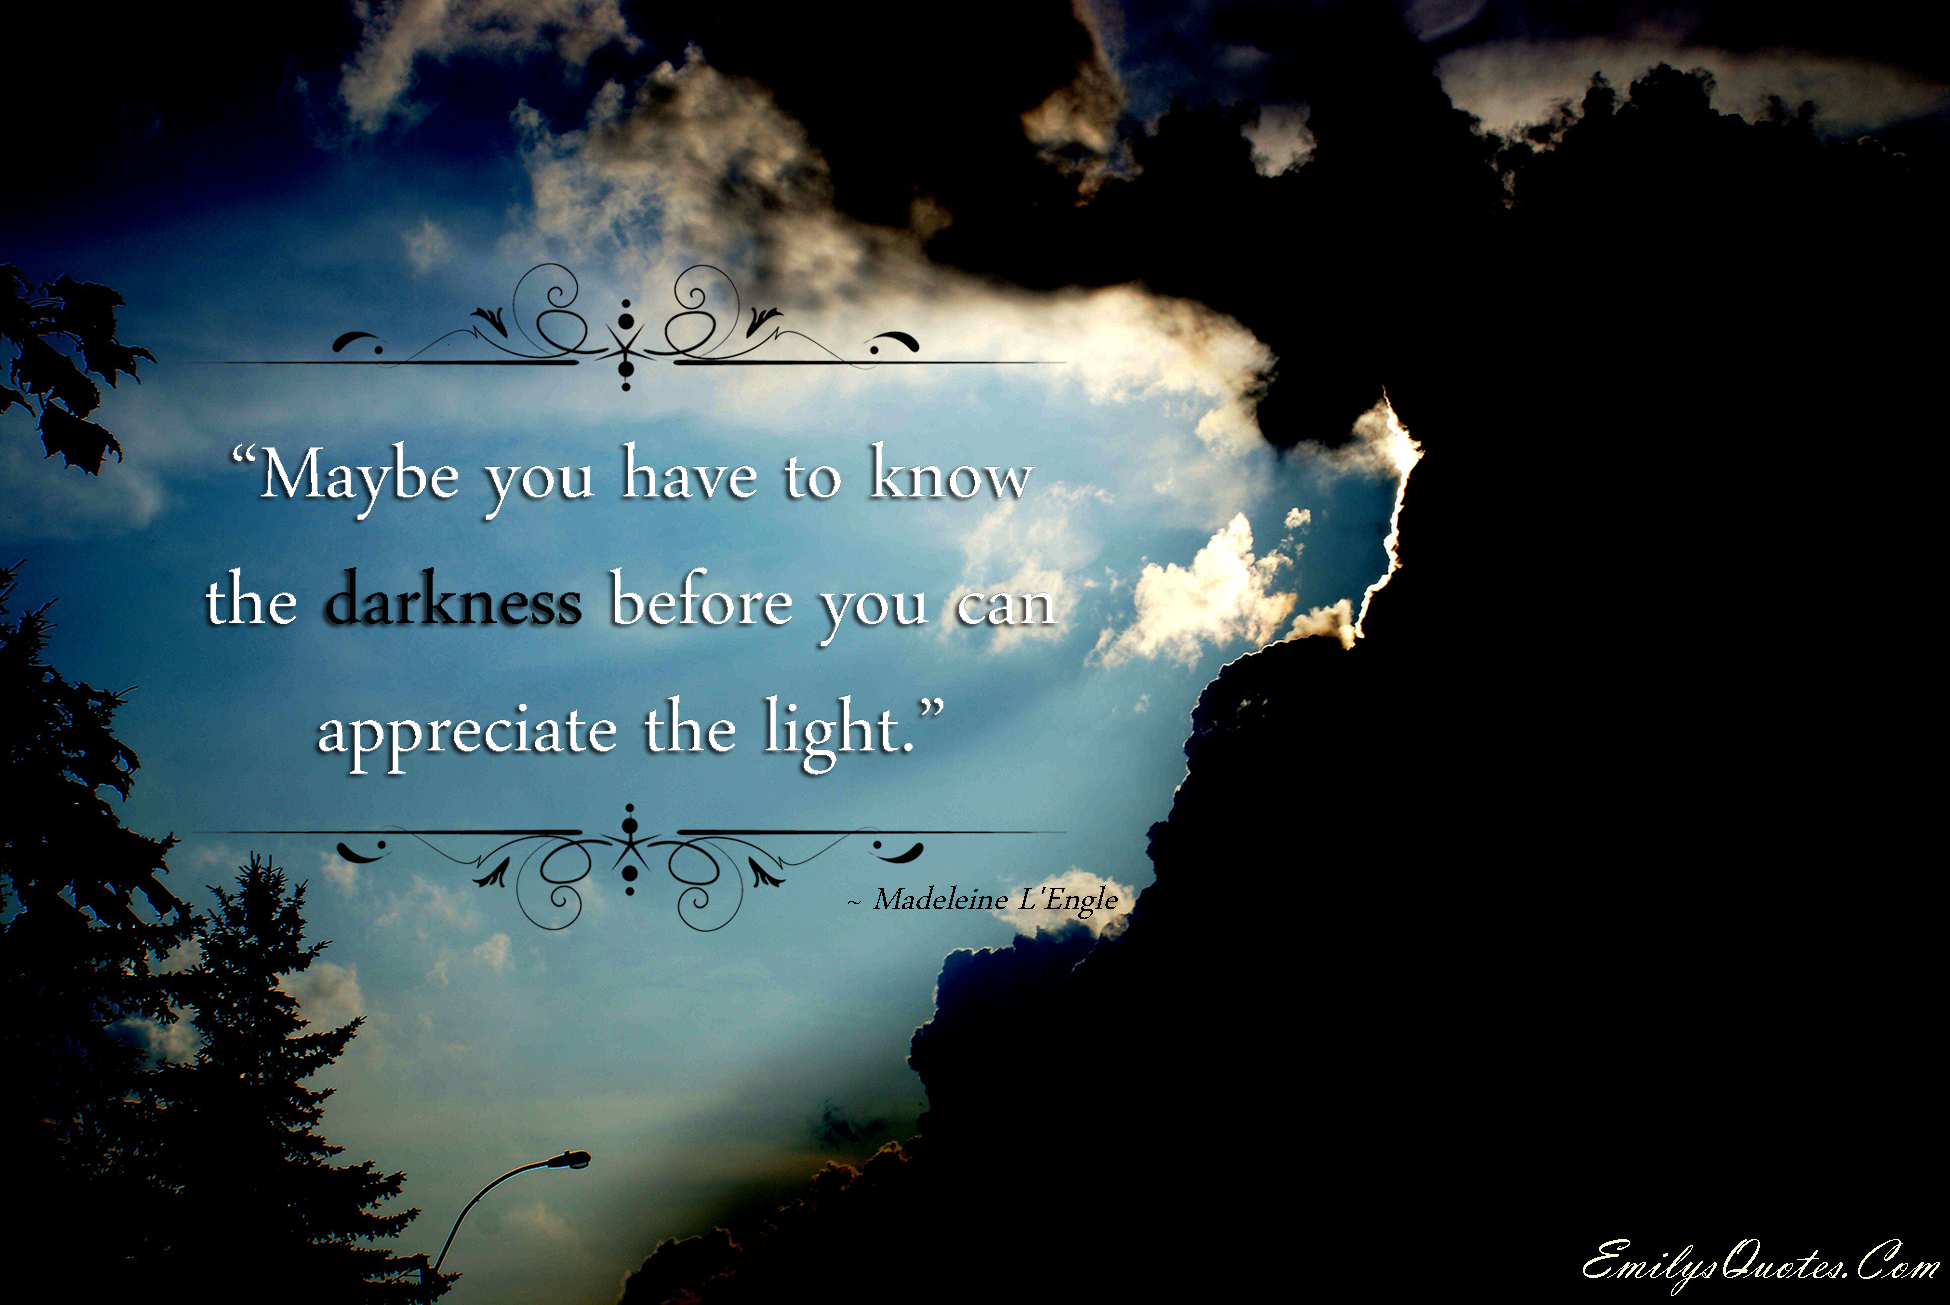 EmilysQuotes.Com - light, darkness, appreciate, learning, inspirational, wisdom, Madeleine L'Engle